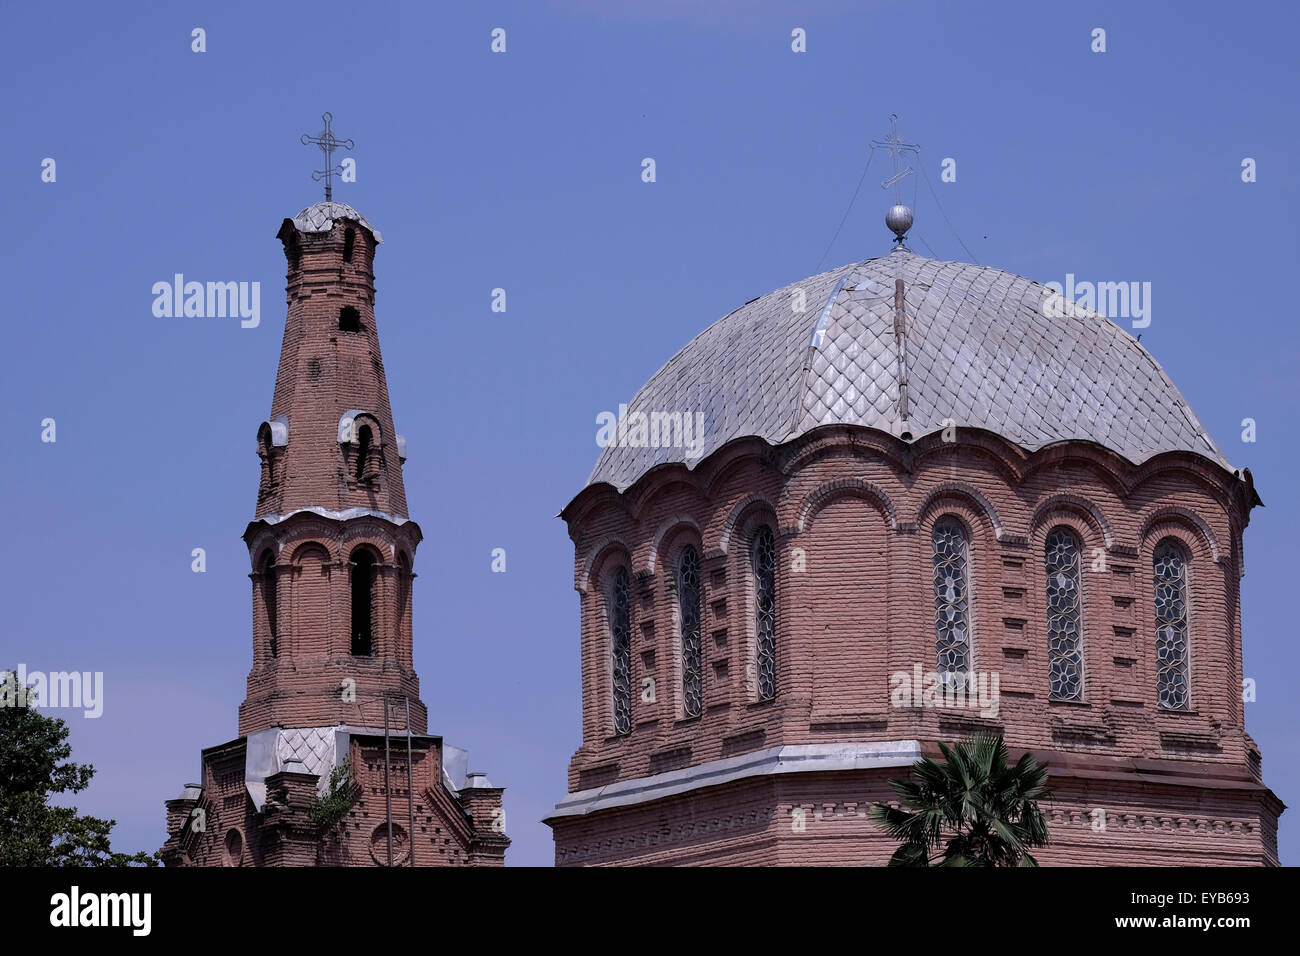 Bell tower and dome of the Alexander Nevsky Russian Orthodox Church in the city of Ganja Azerbaijan - Stock Image